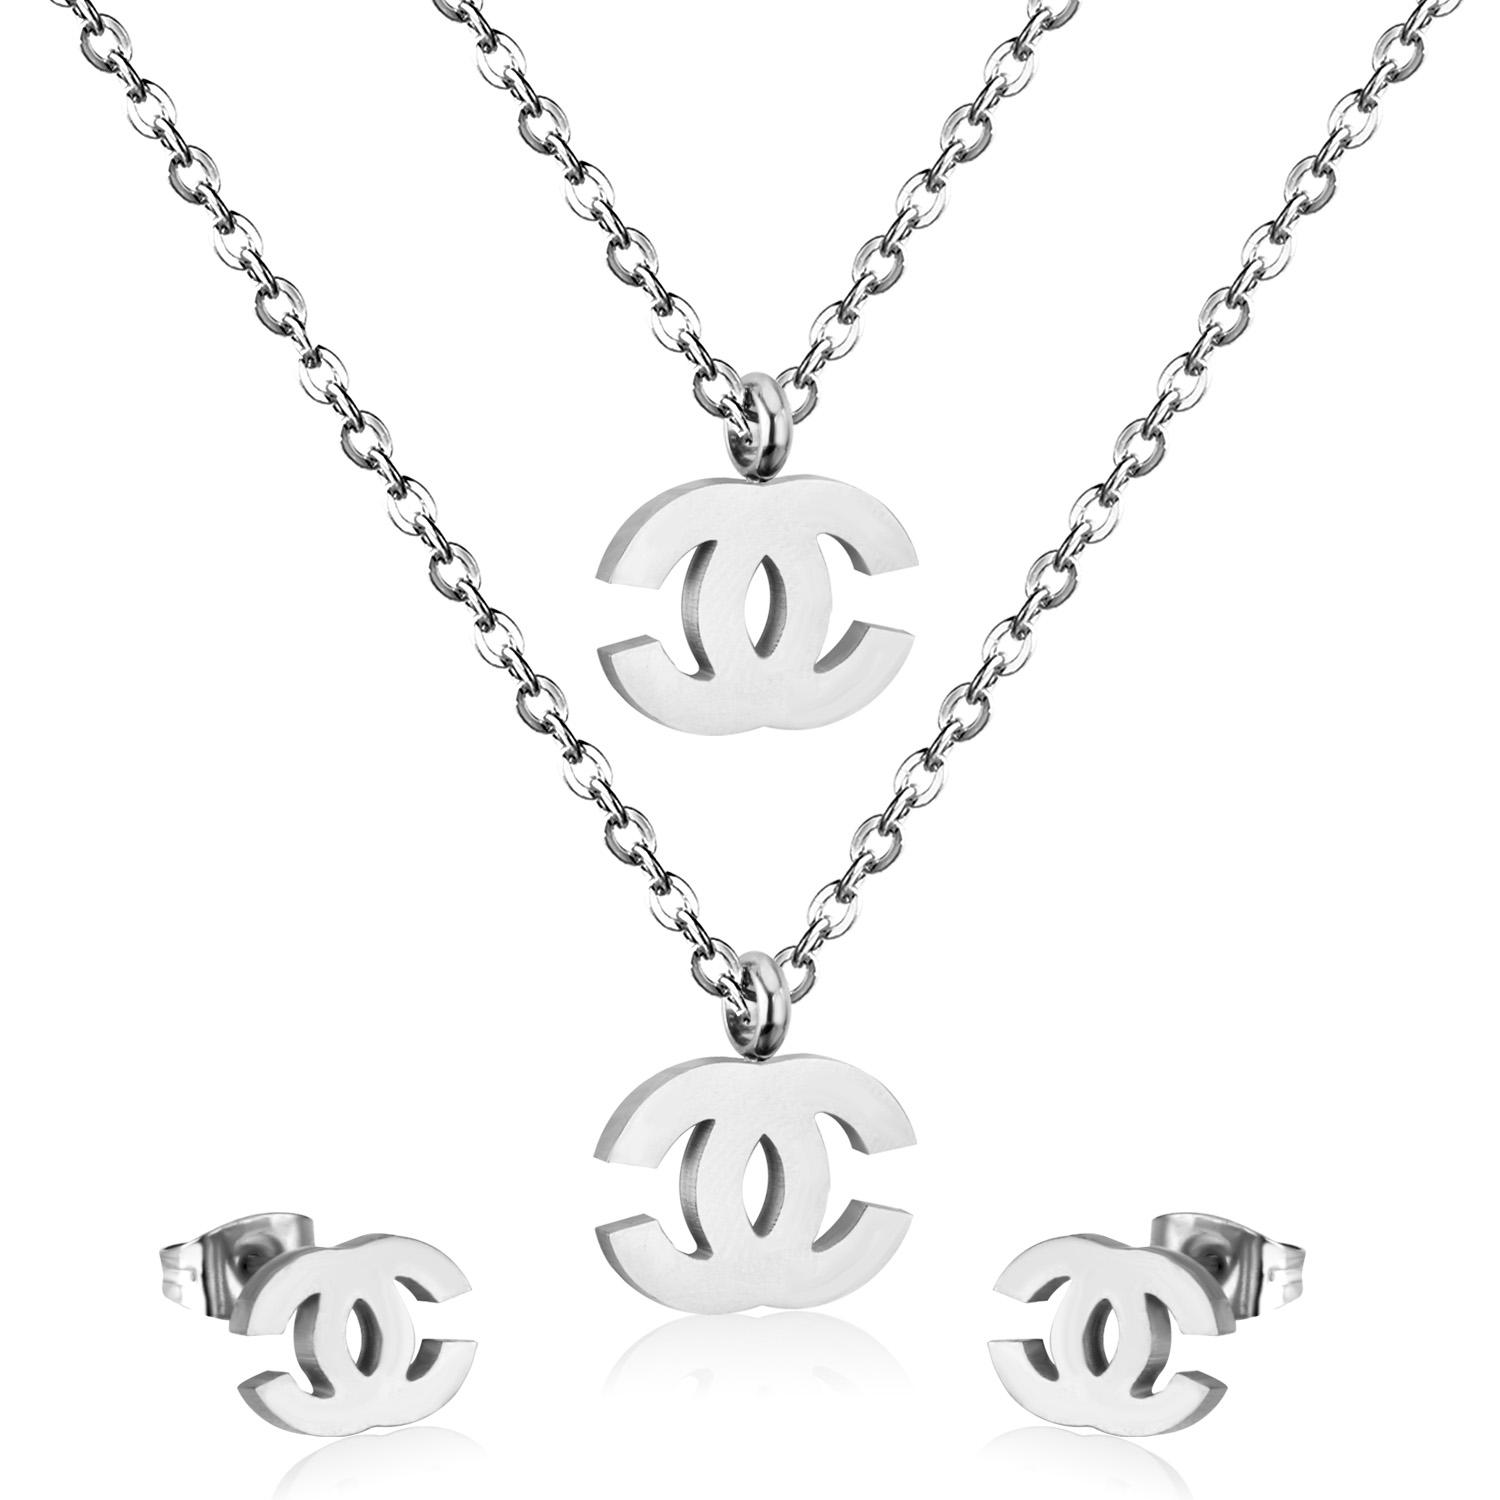 New Brand Stainless Steel Jewelry Sets Double Chain Necklace design with brand stud earrings for women